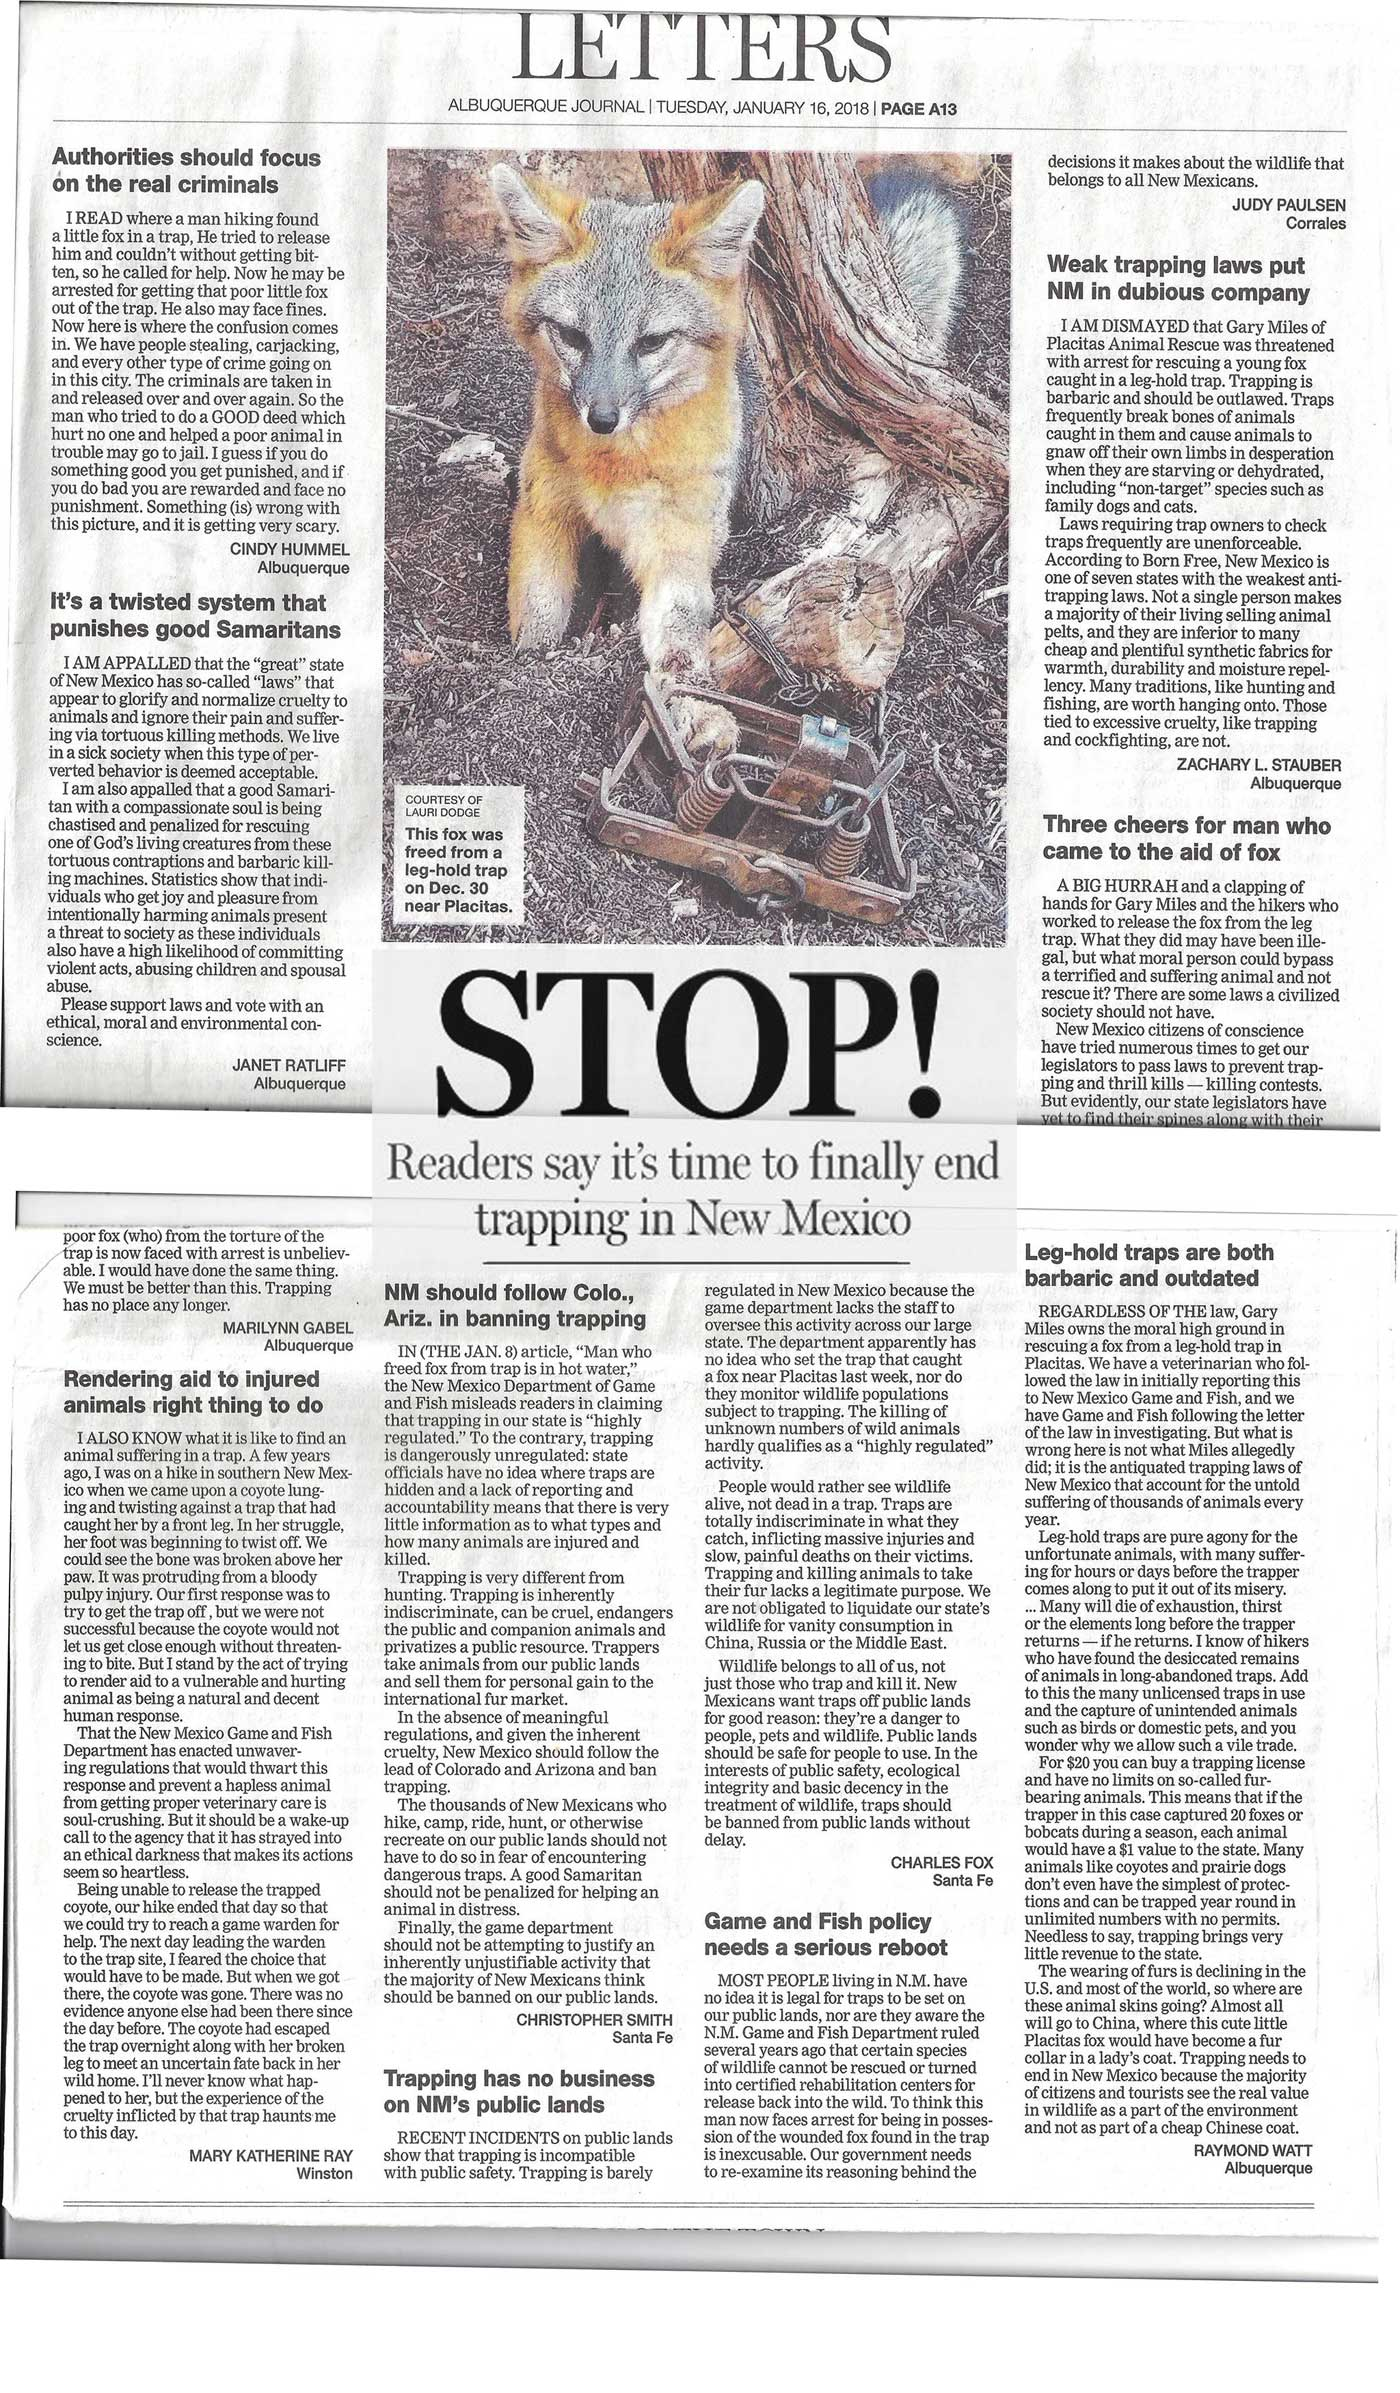 STOP Trapping in New Mexico - Albuquerque Journal Letters to the Editor - January 16, 2018